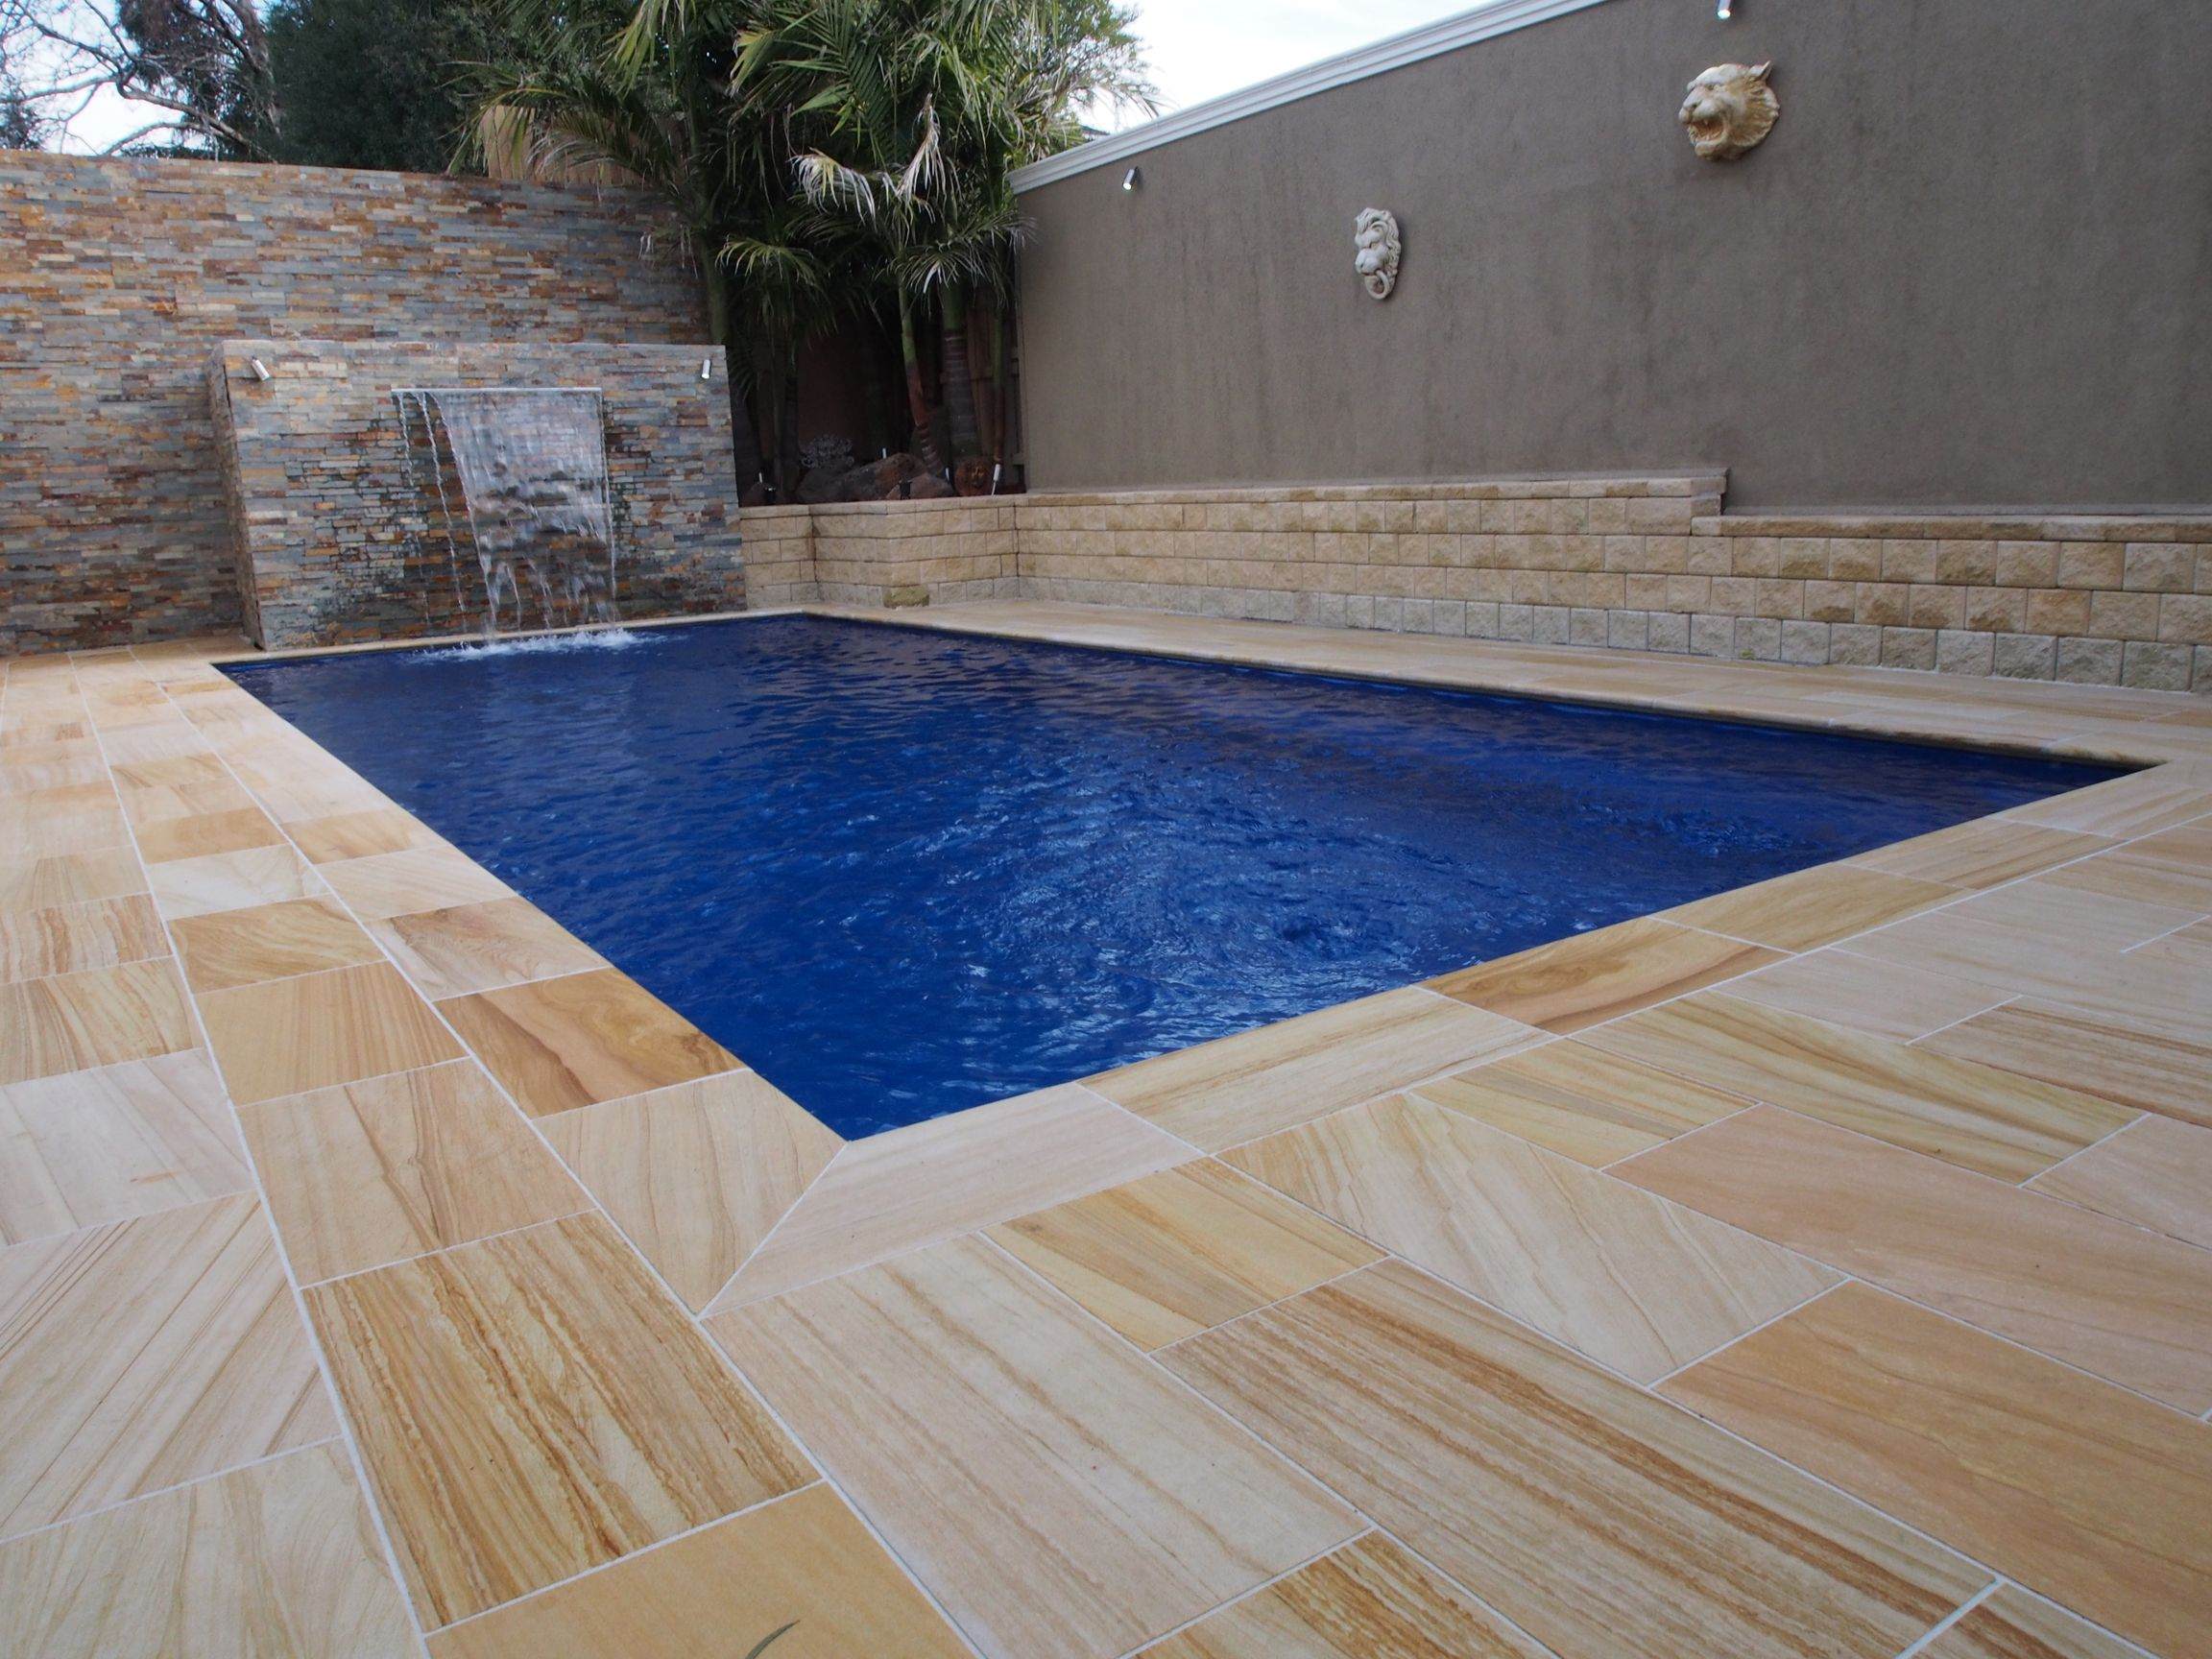 Sandstone #pool, from another angle | Sandstone Pavers & Tiles ...